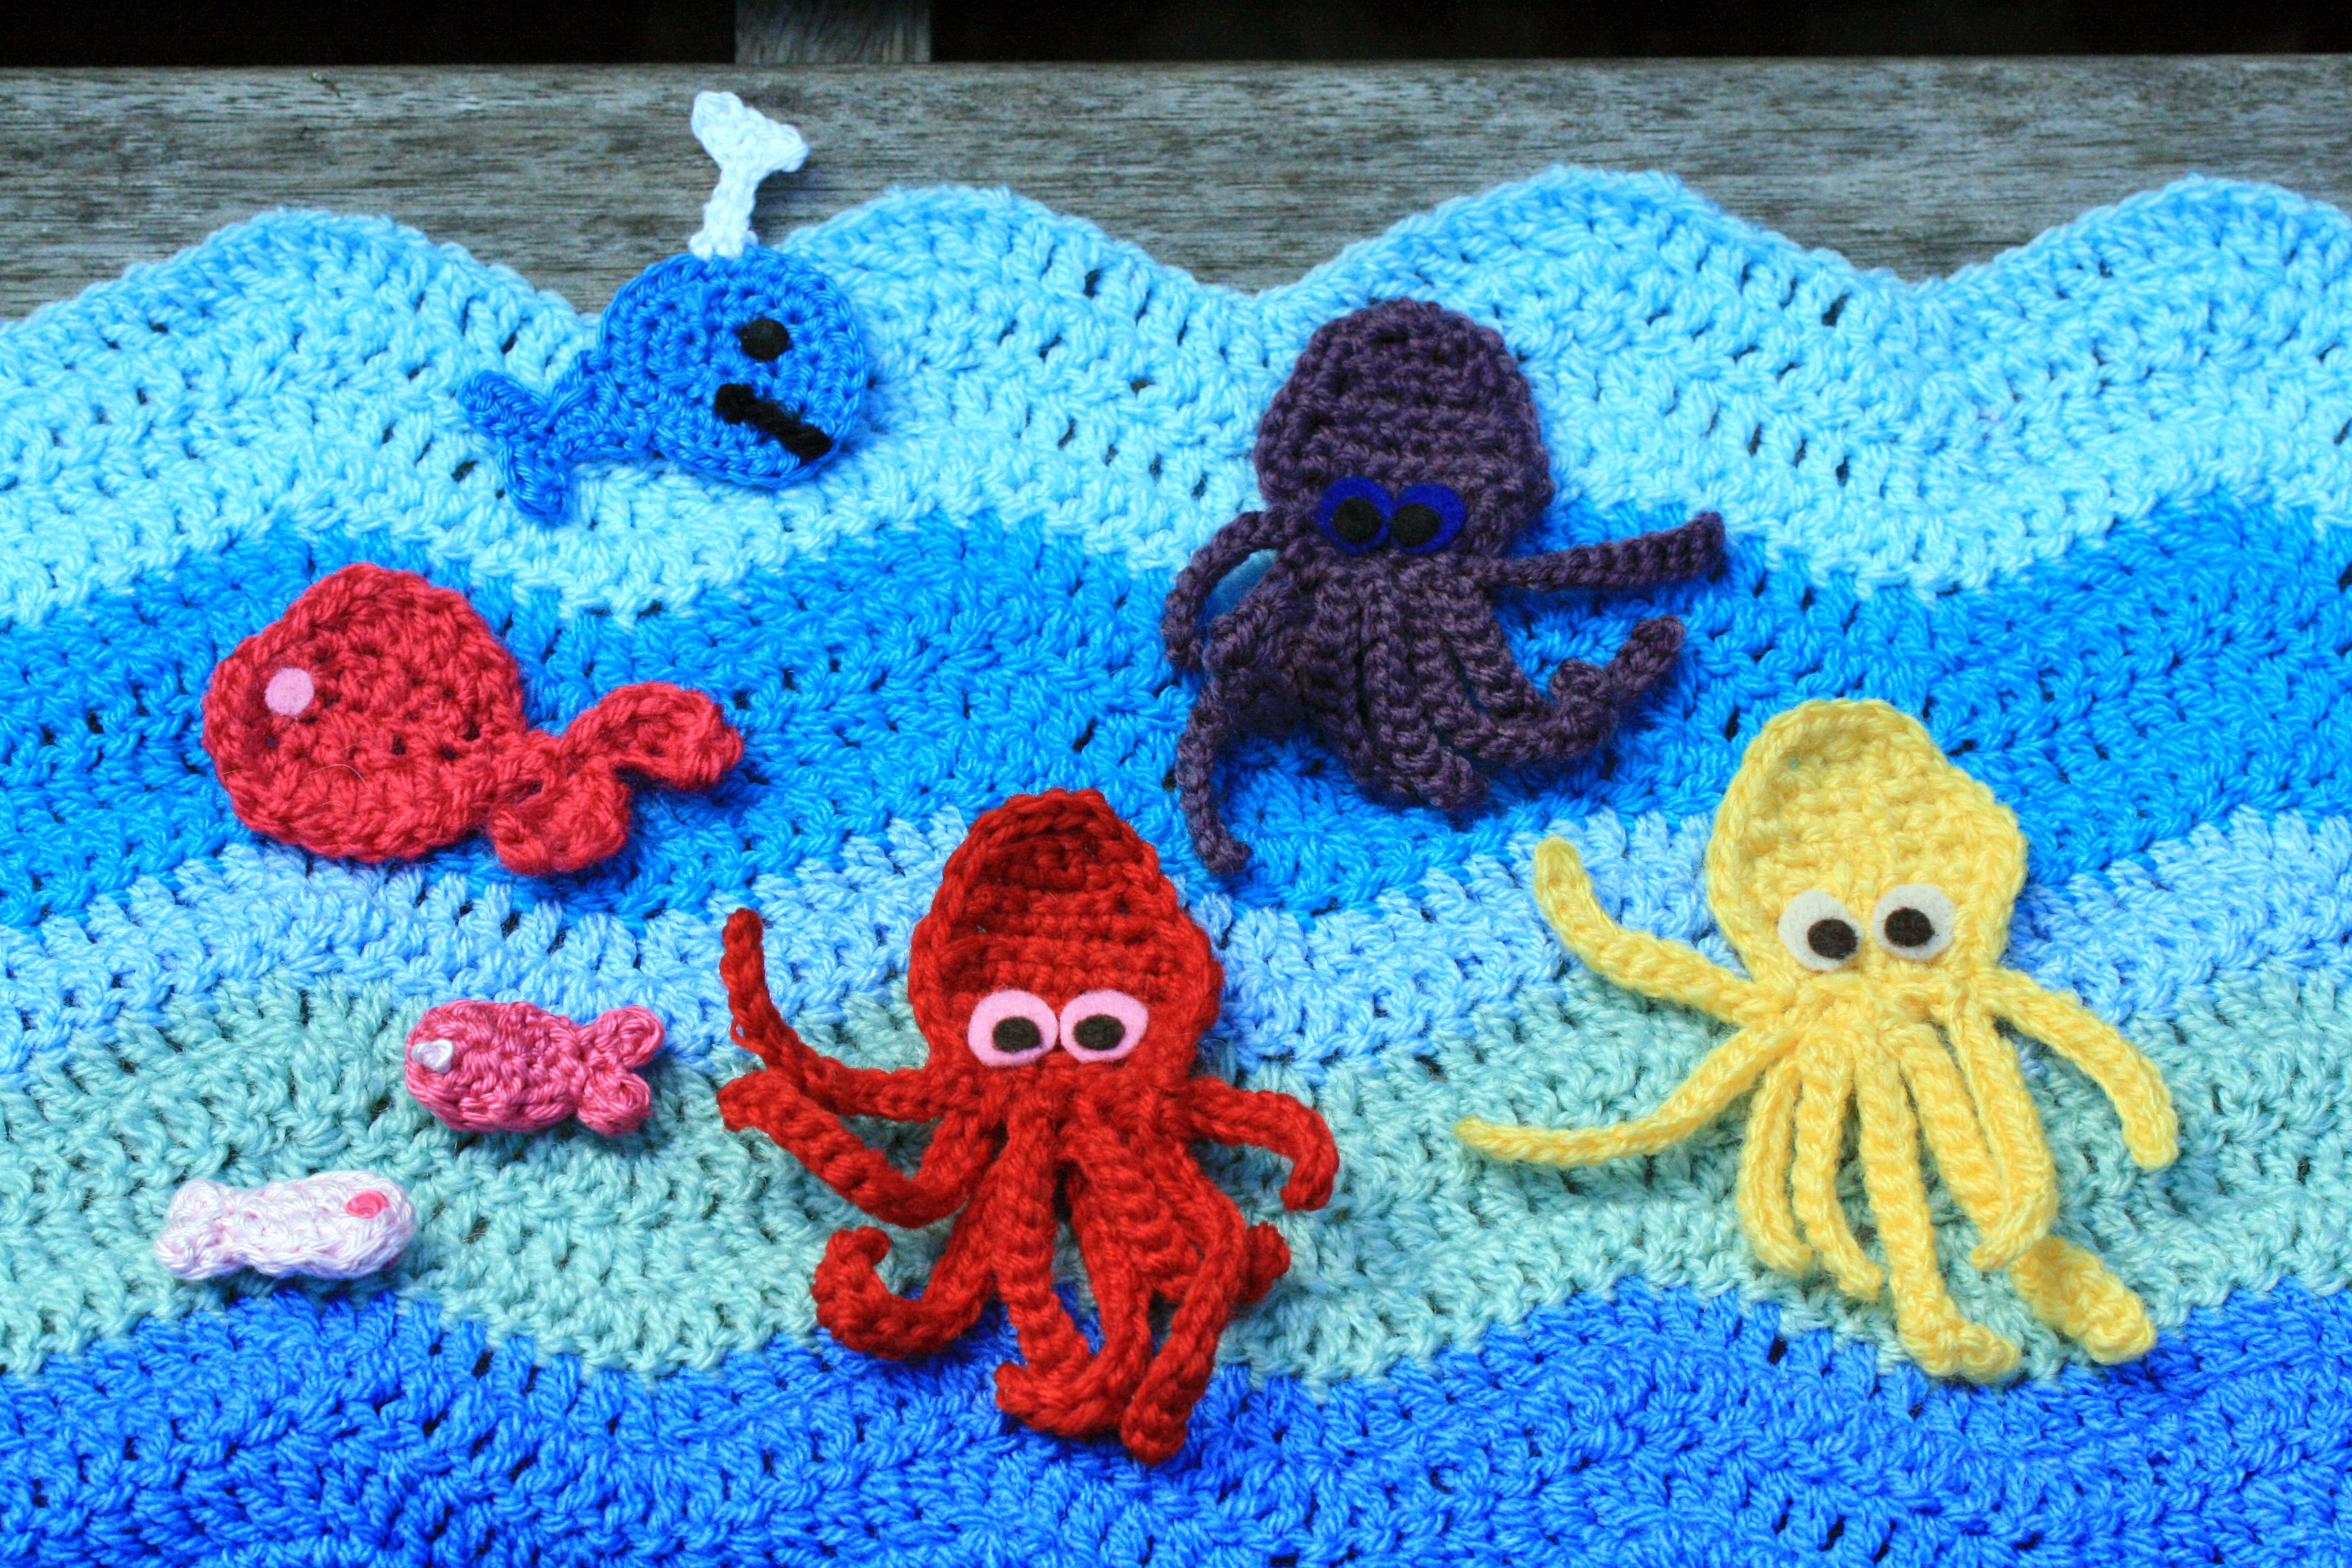 Knitted Amigurumi Sea Creatures : thegrangerange sharing and learning our creative crochet ...